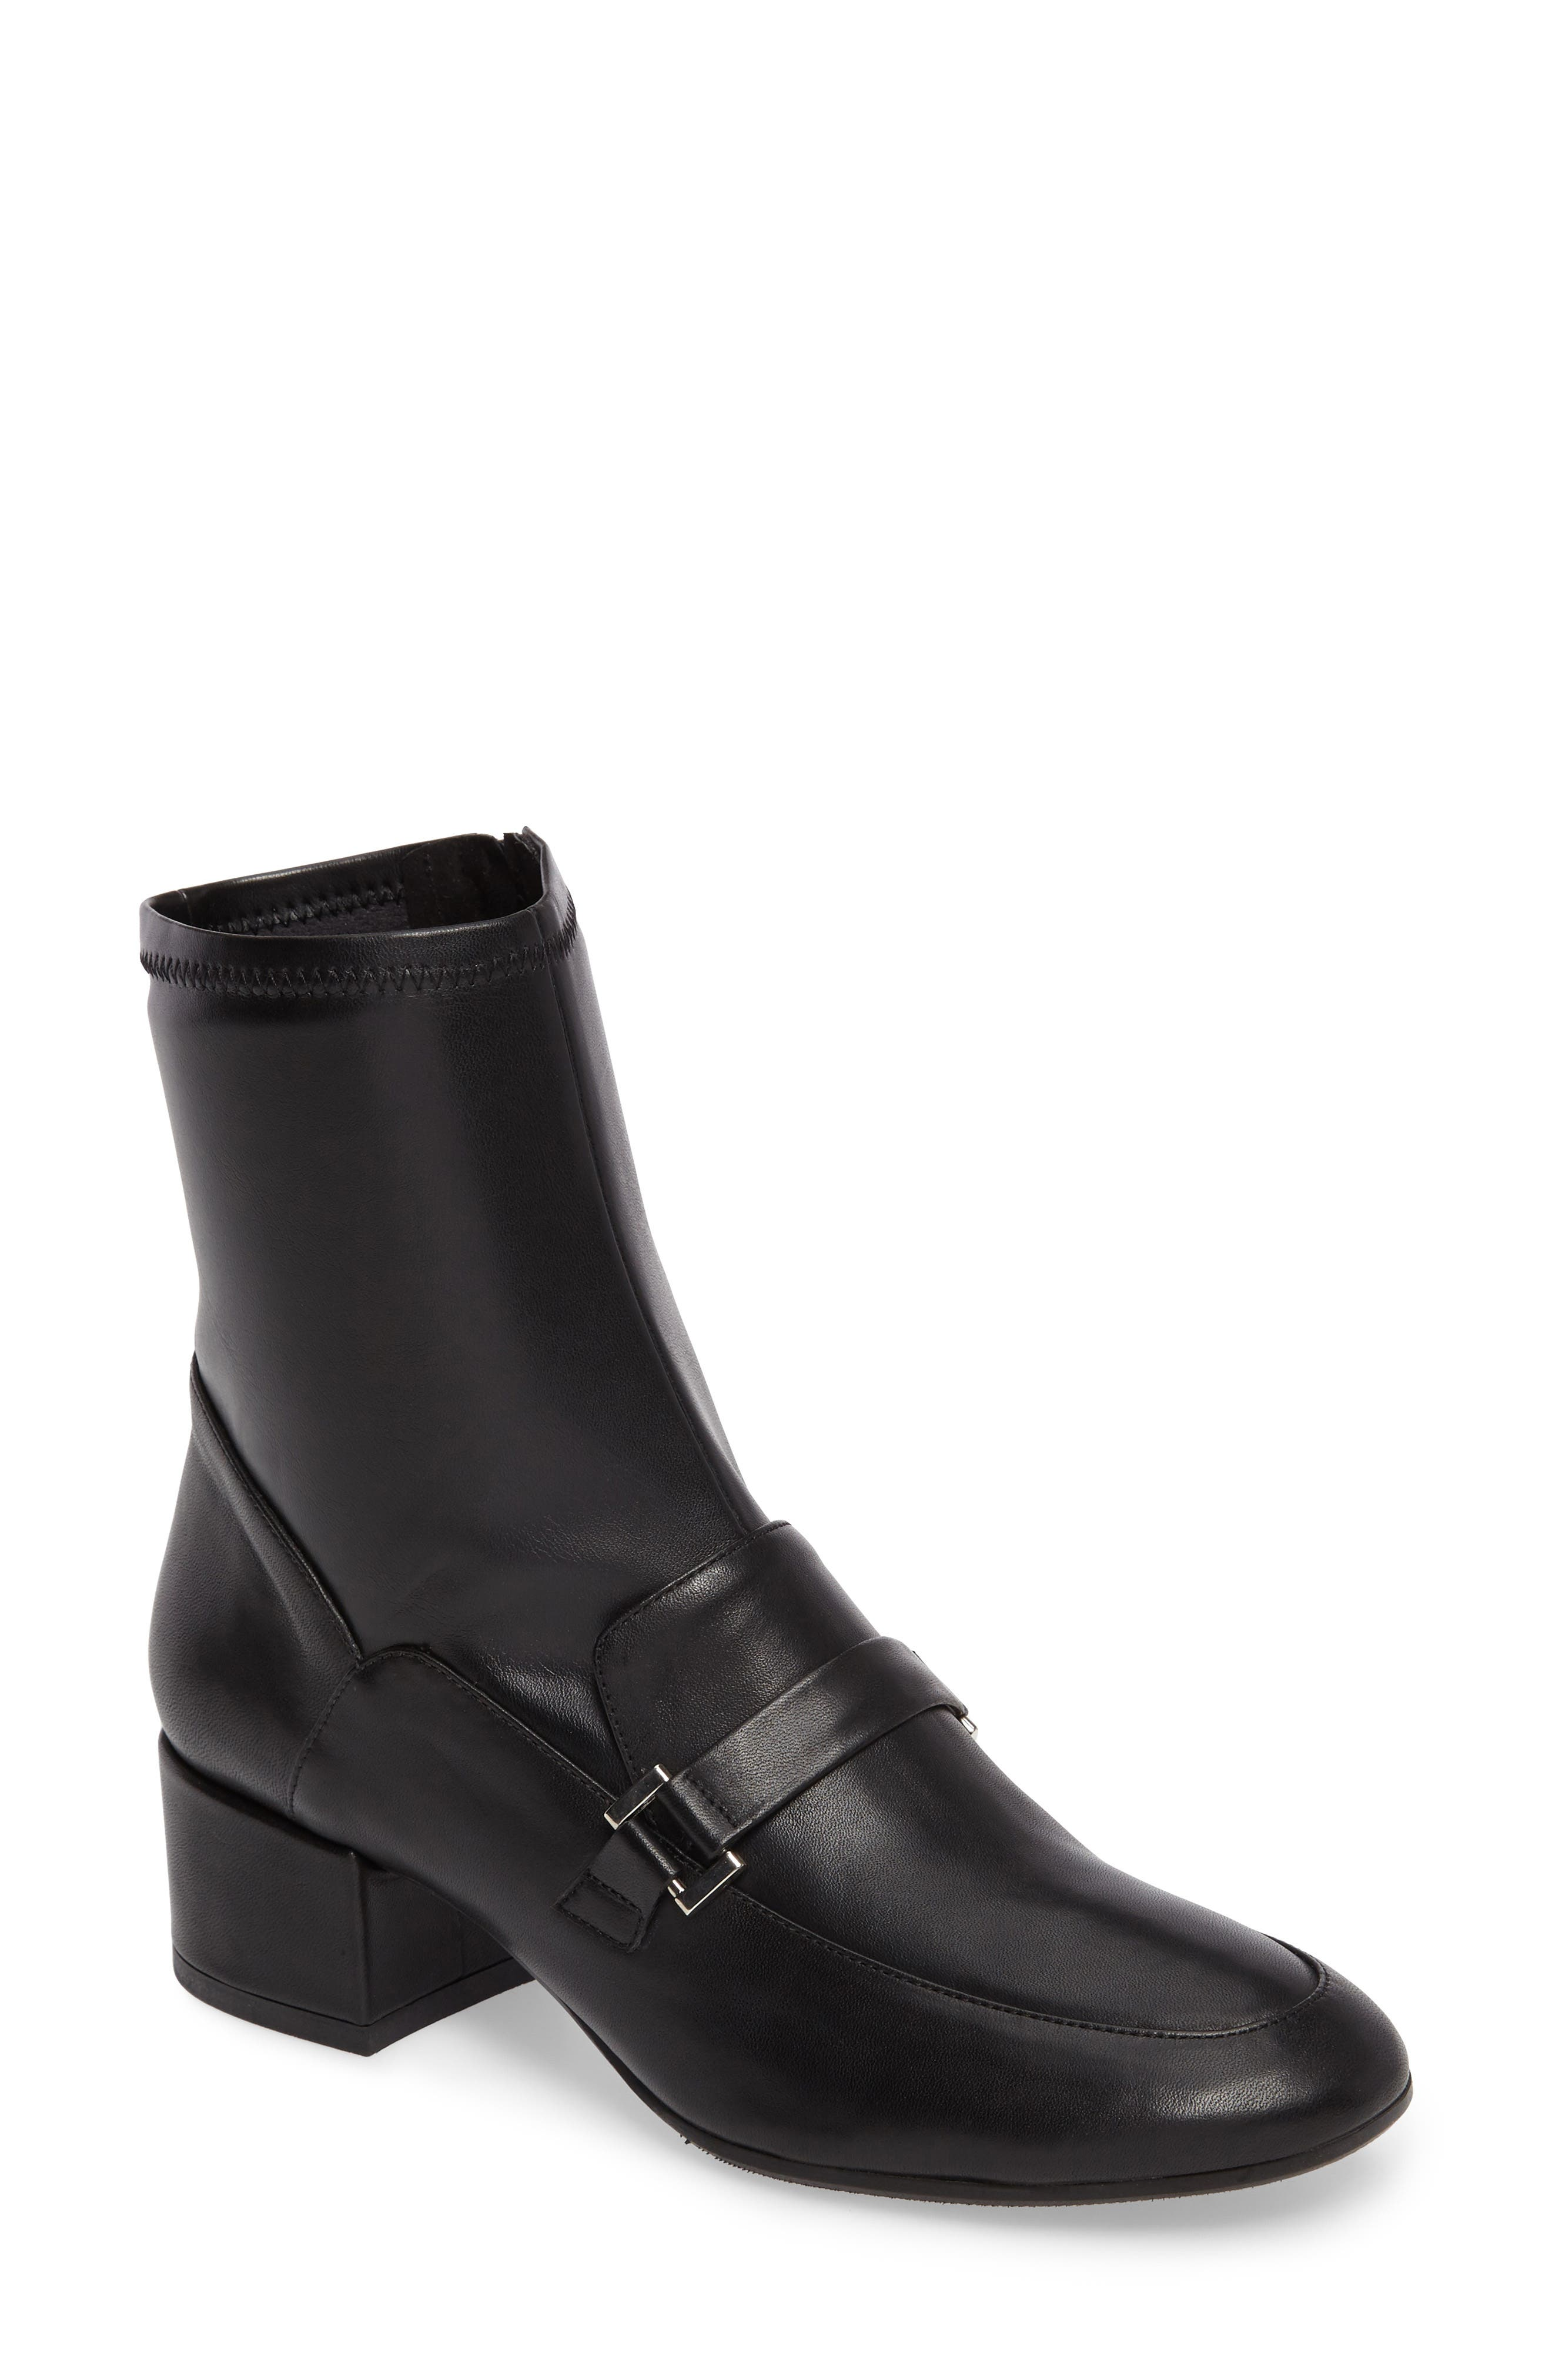 Mod Loafer Bootie,                             Main thumbnail 1, color,                             Black Stretch Leather